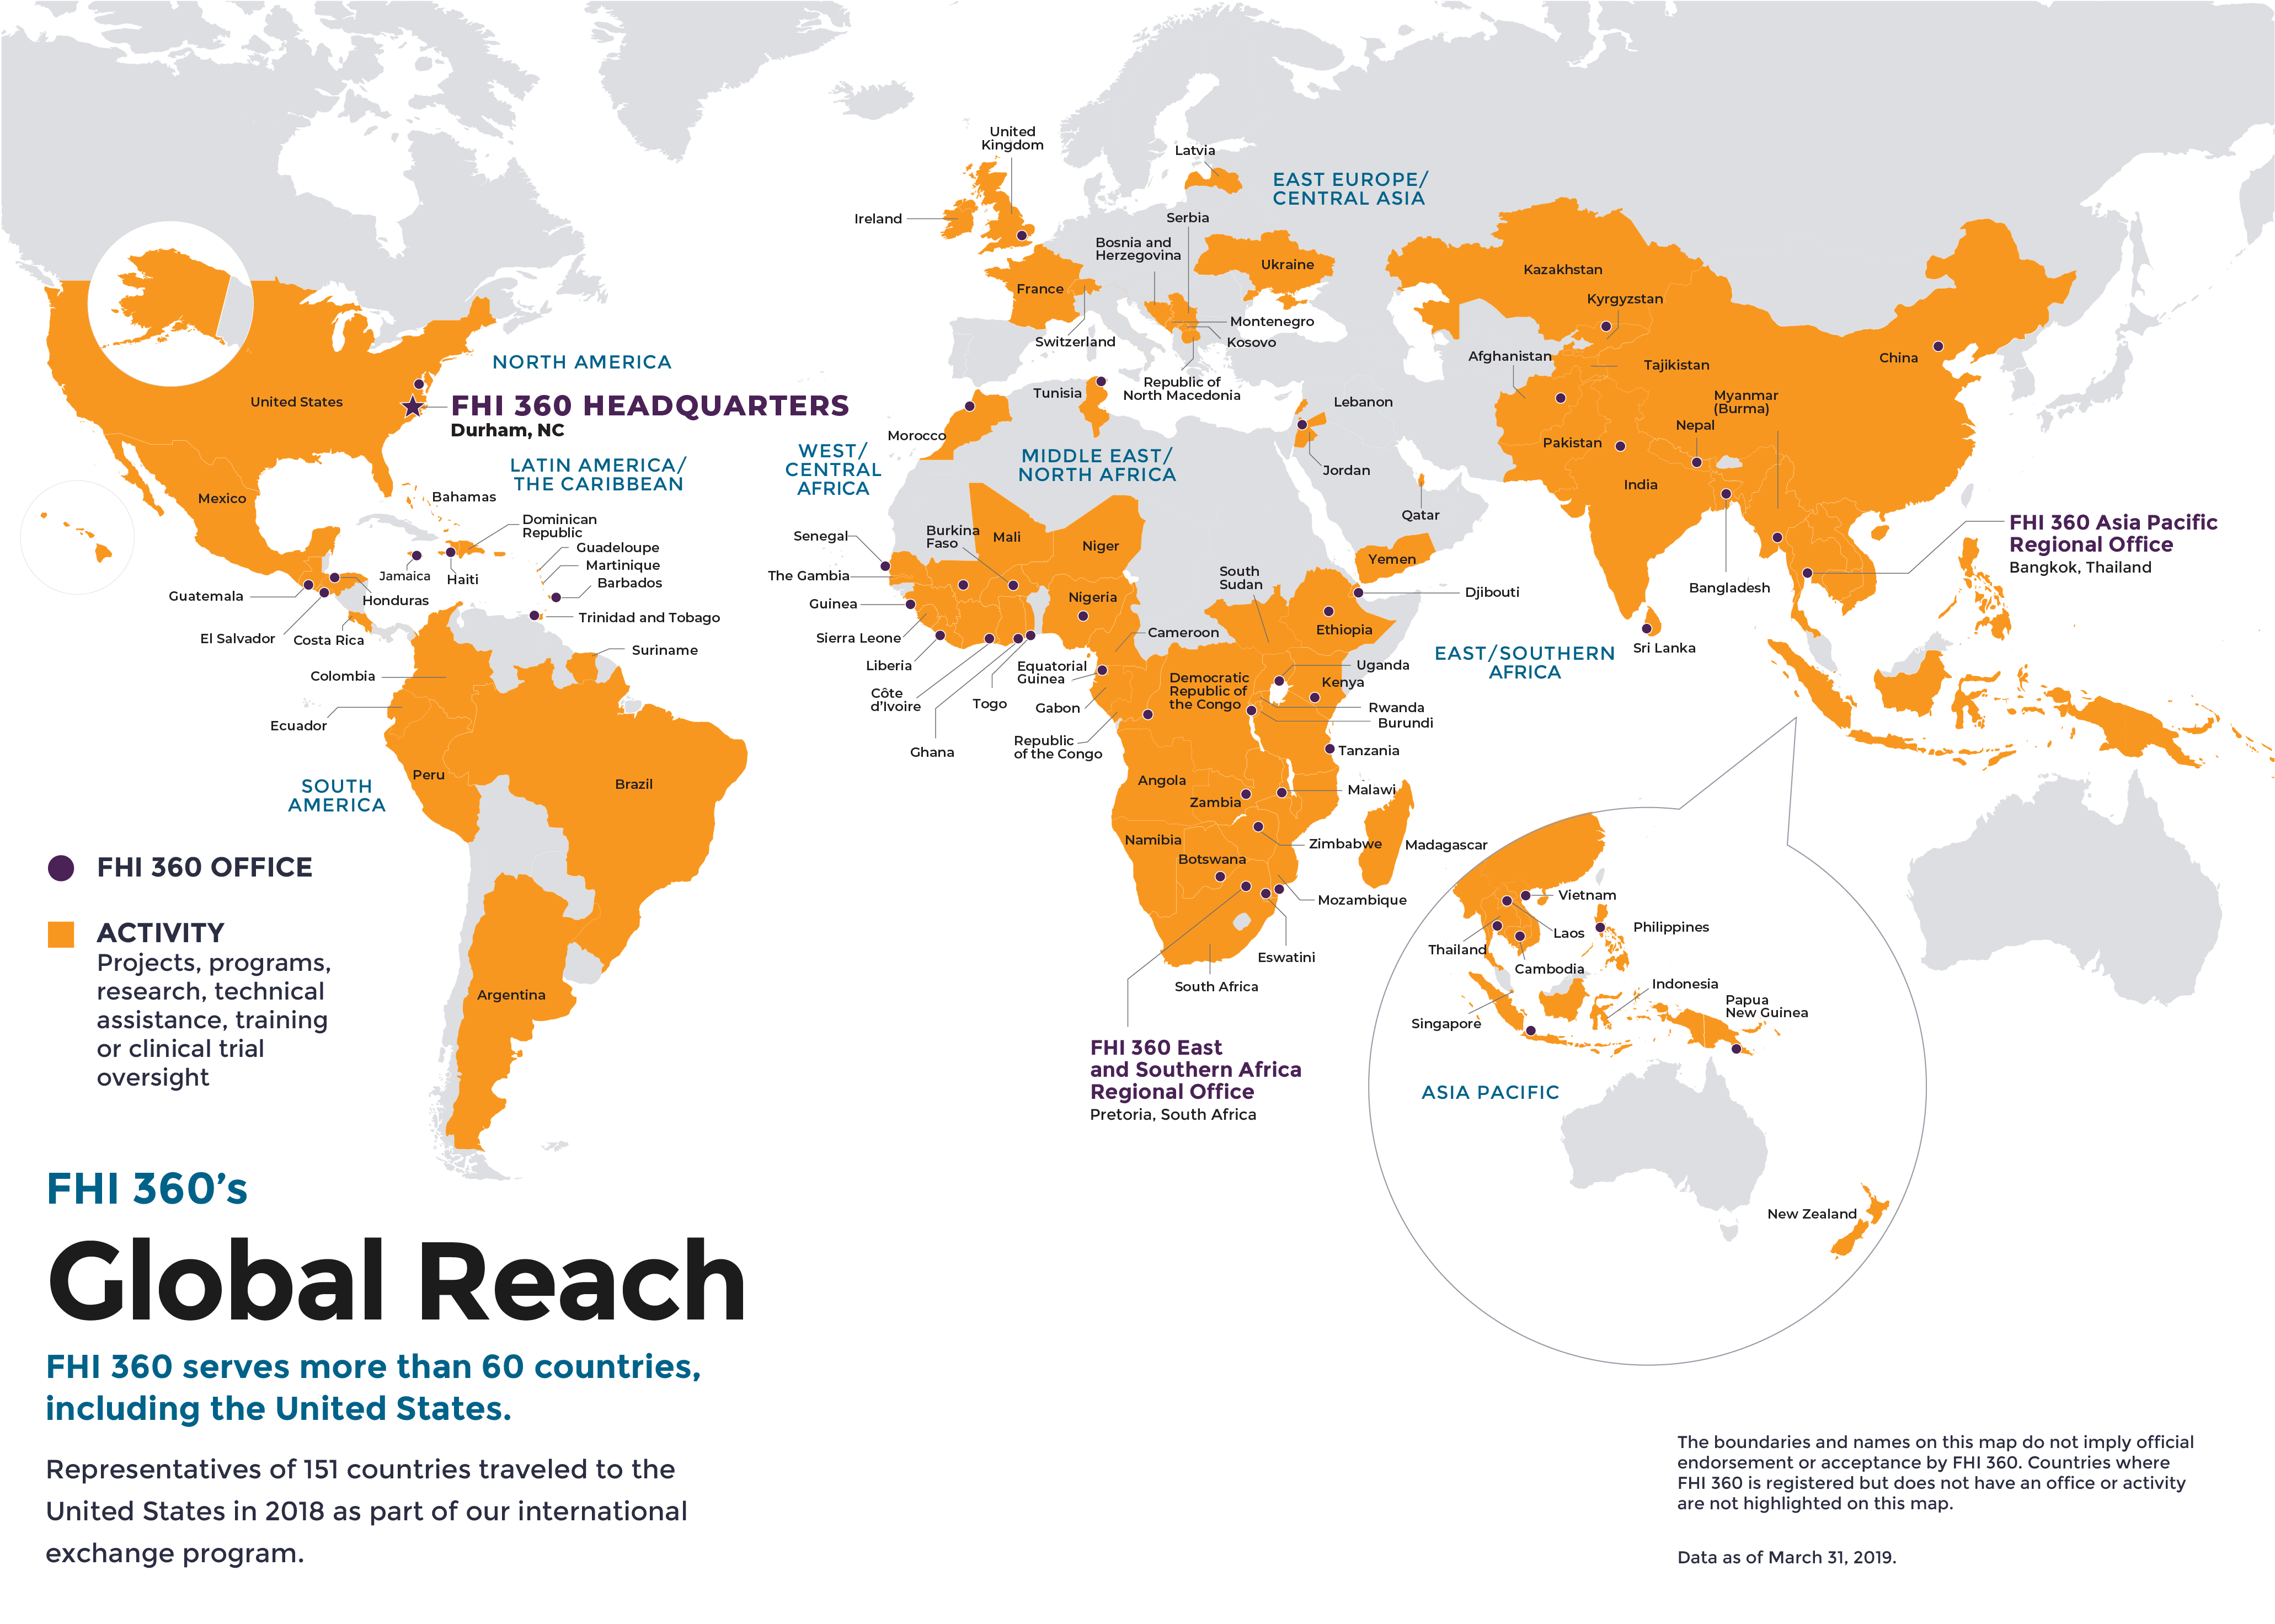 World map depicting FHI 360's project activity and office locations